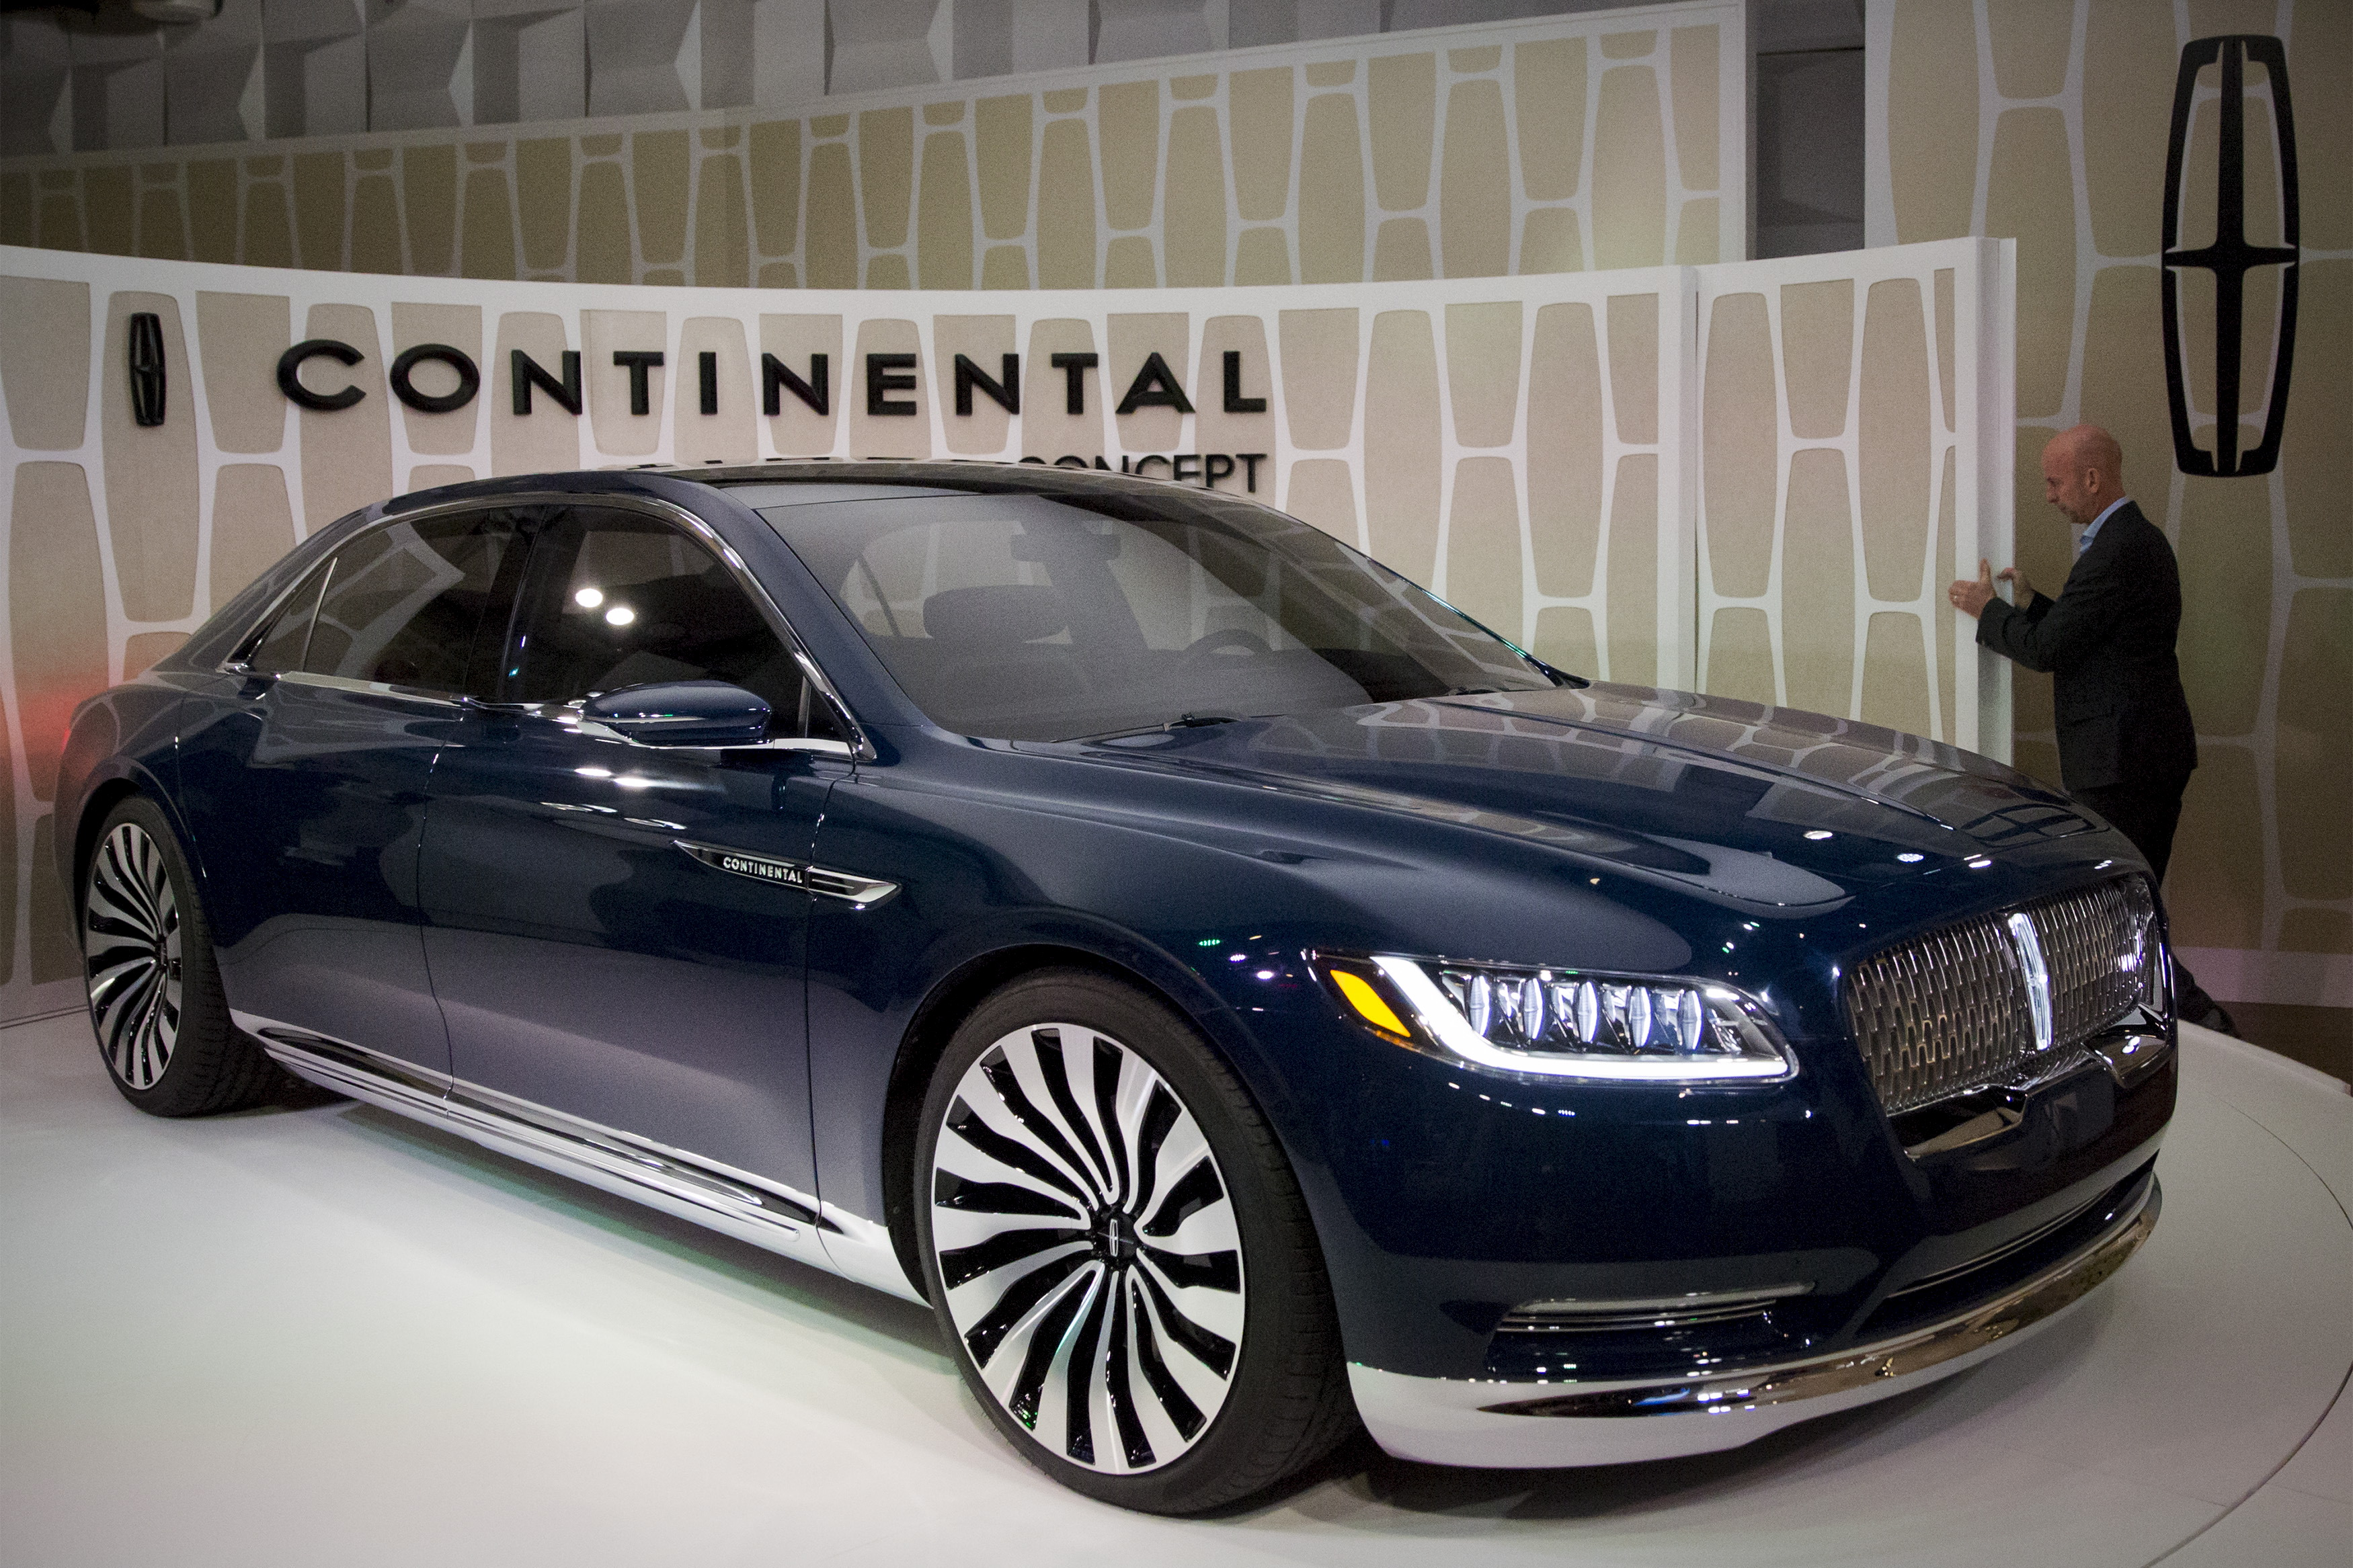 rtr4vi45 Outstanding Lincoln Continental New York Auto Show Cars Trend